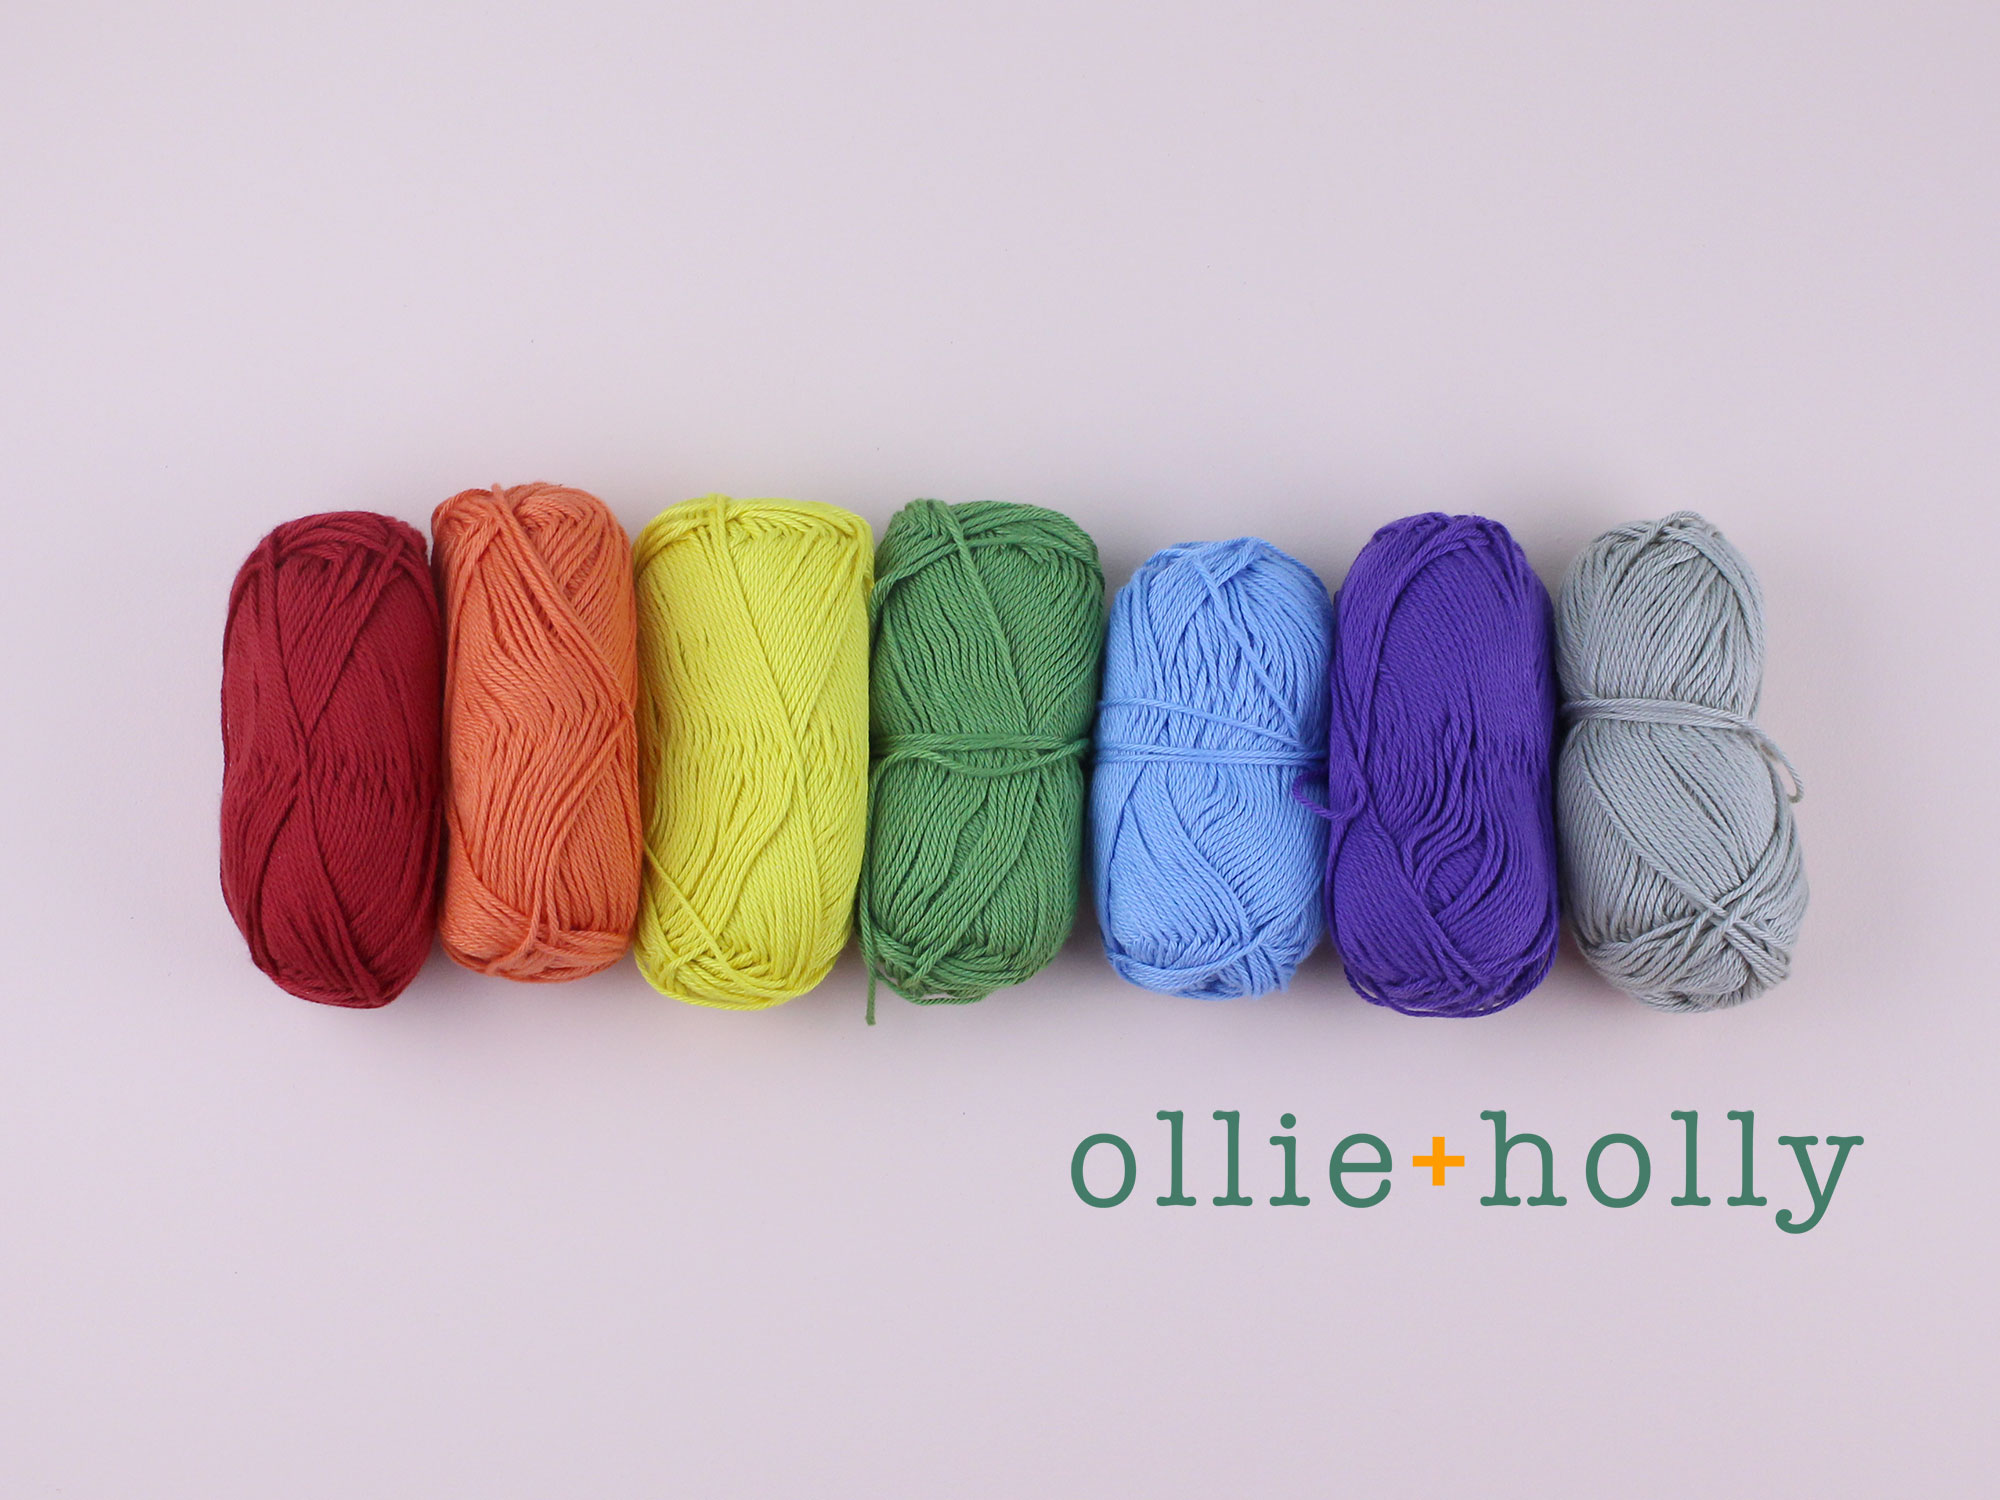 Ollie Holly Knitpicks Shine Sport Yarn Selection